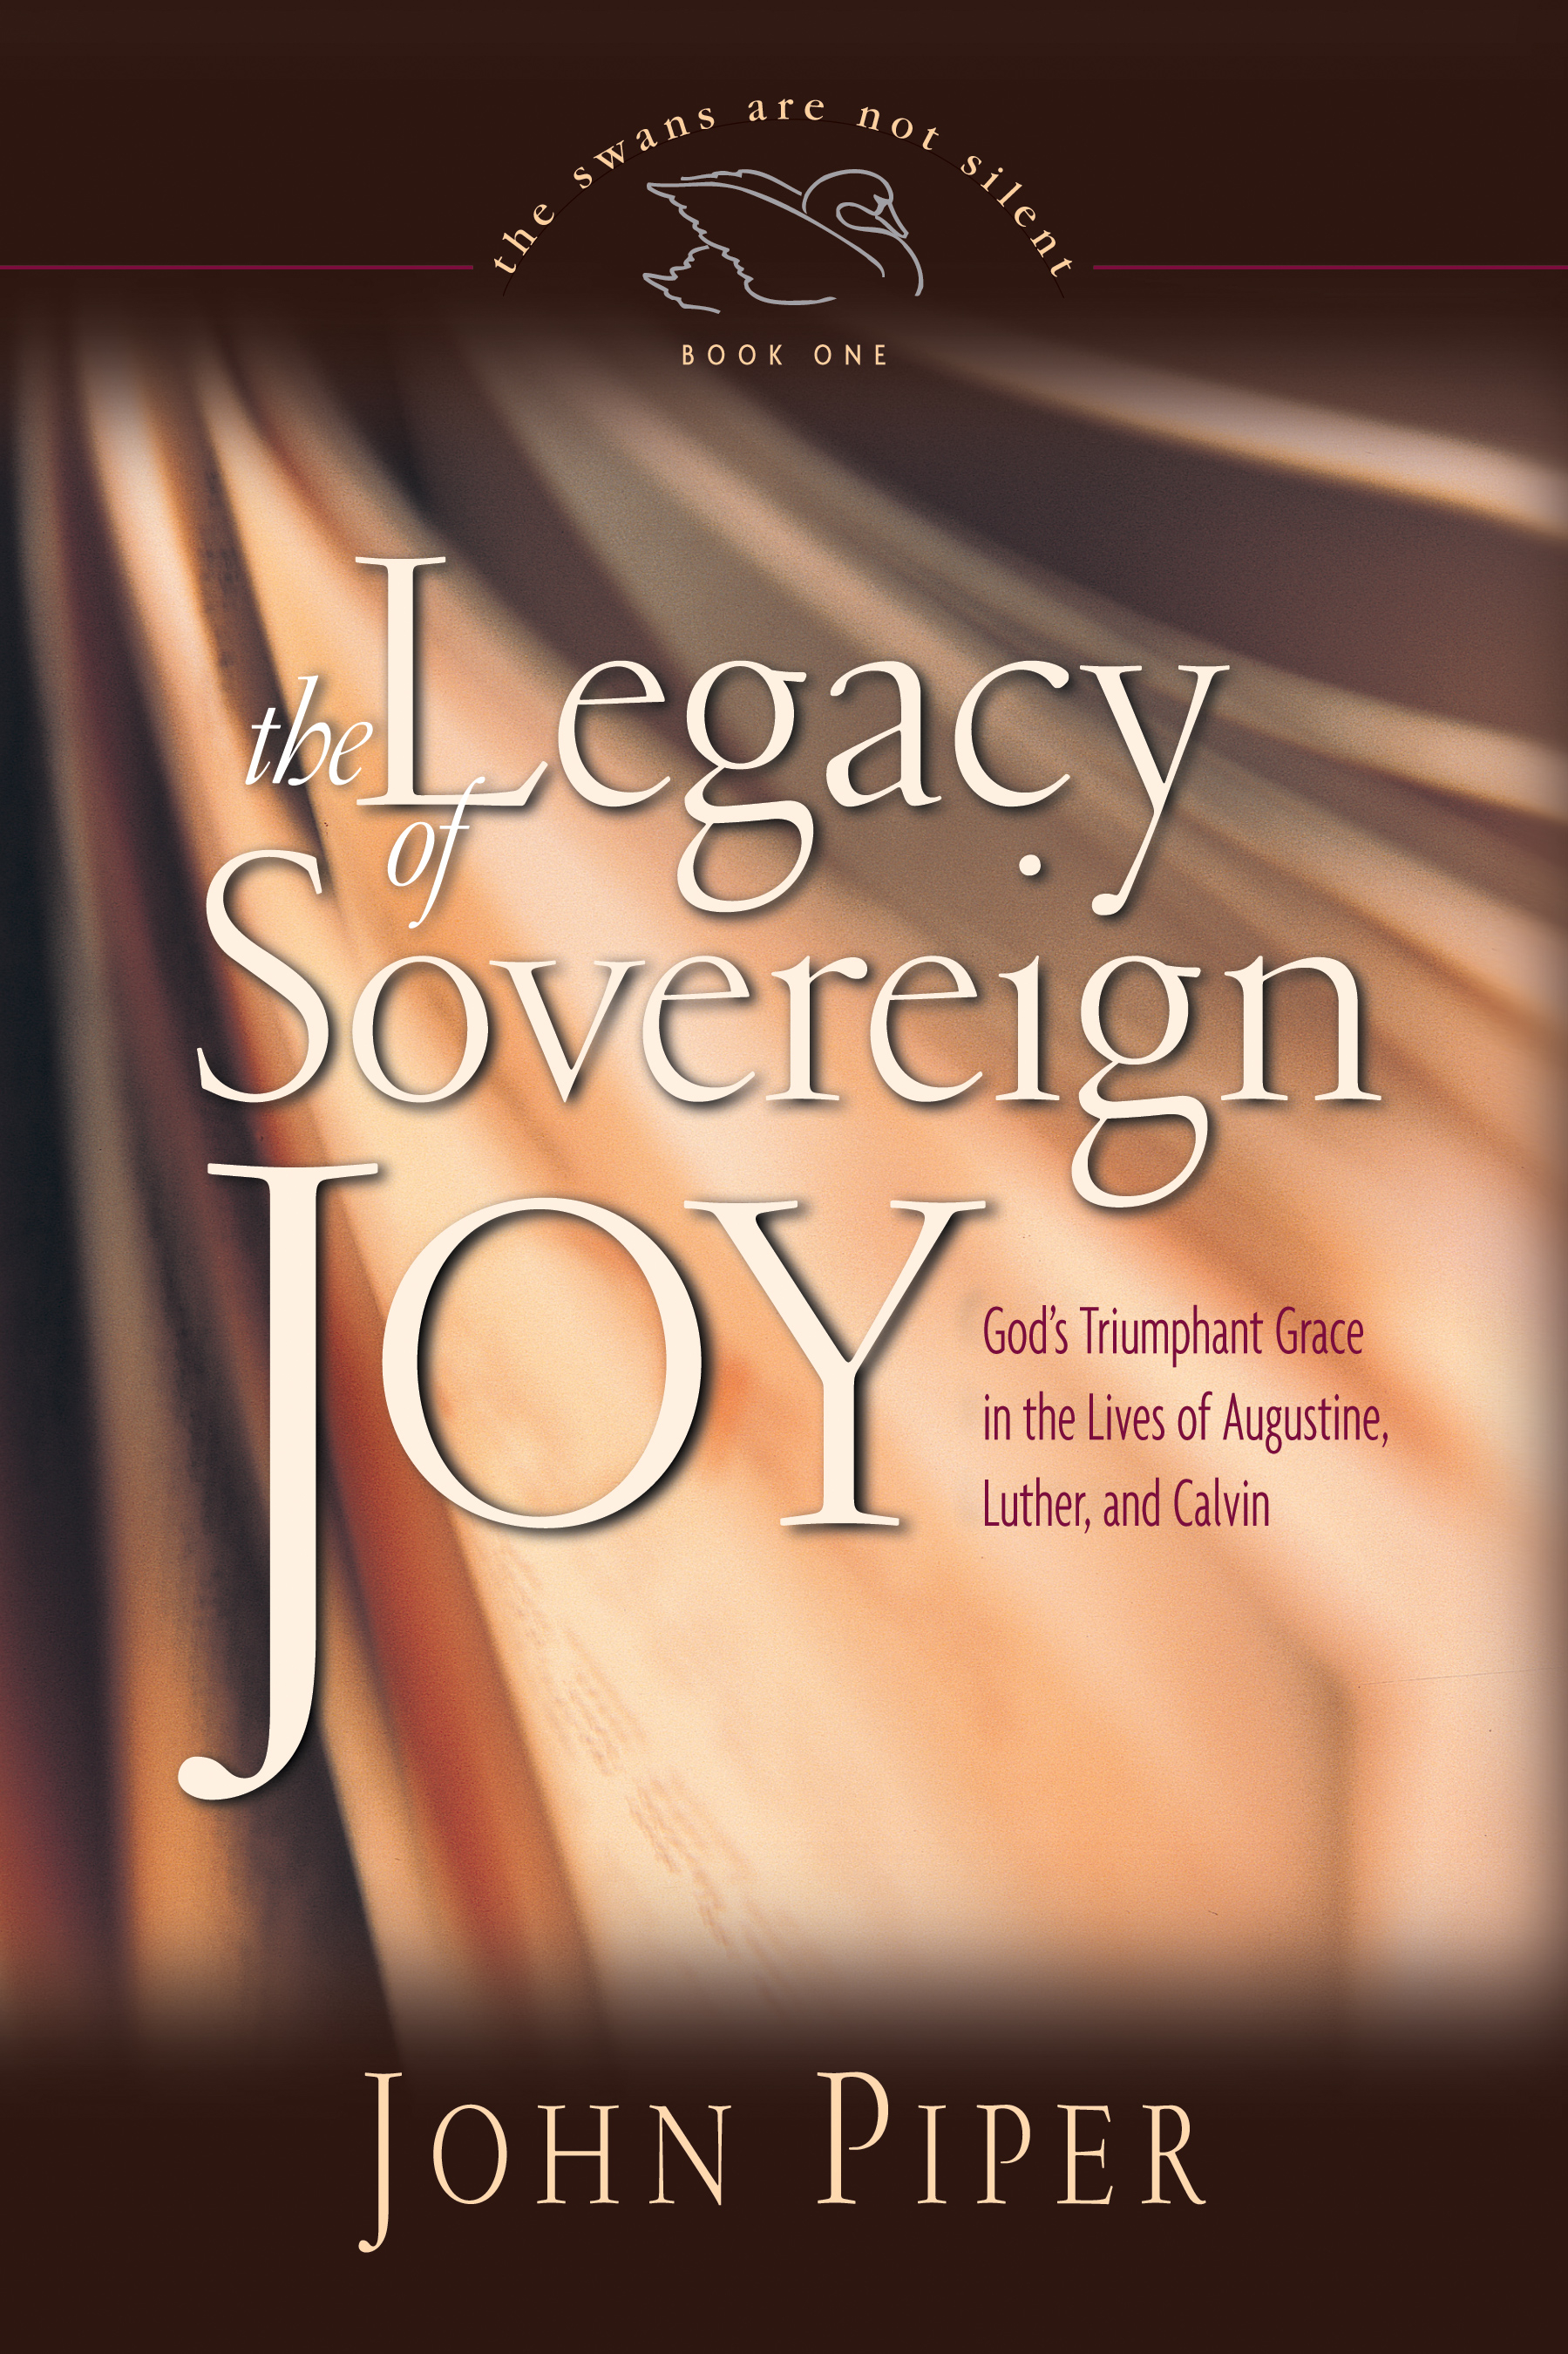 The Legacy of Sovereign Joy: God's Triumphant Grace in the Lives of Augustine, Luther and Calvin